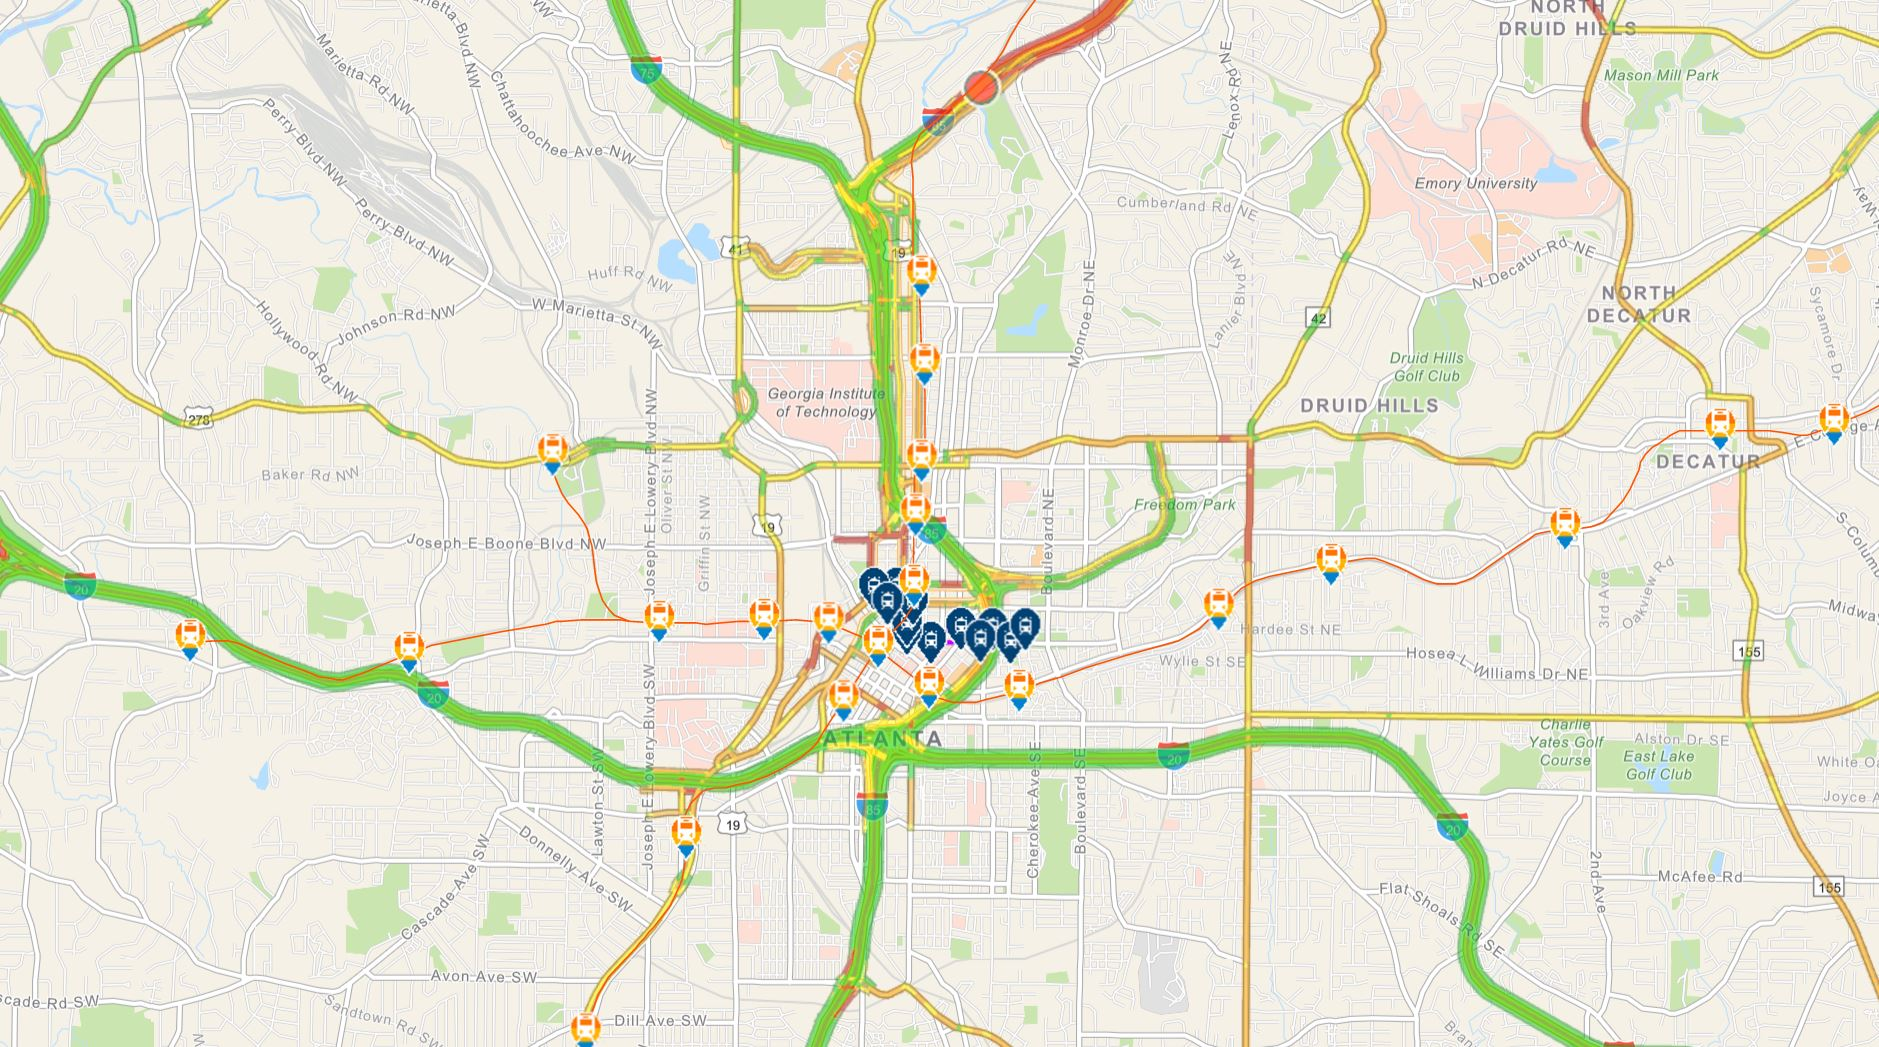 Map showing traffic, transit stations, and bike storage areas.